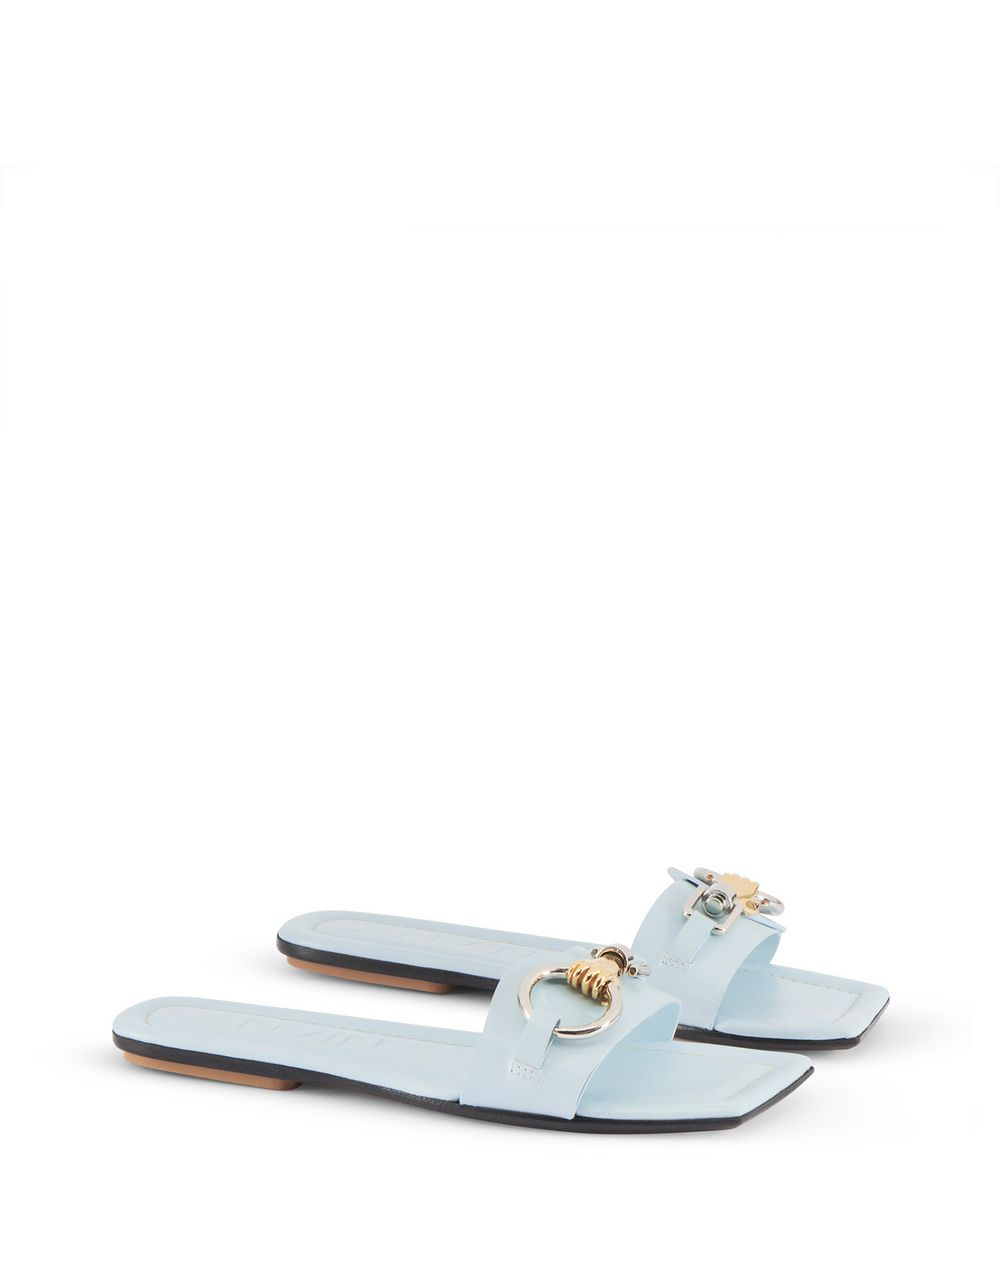 FLAT JEWELED SANDAL - Lanvin